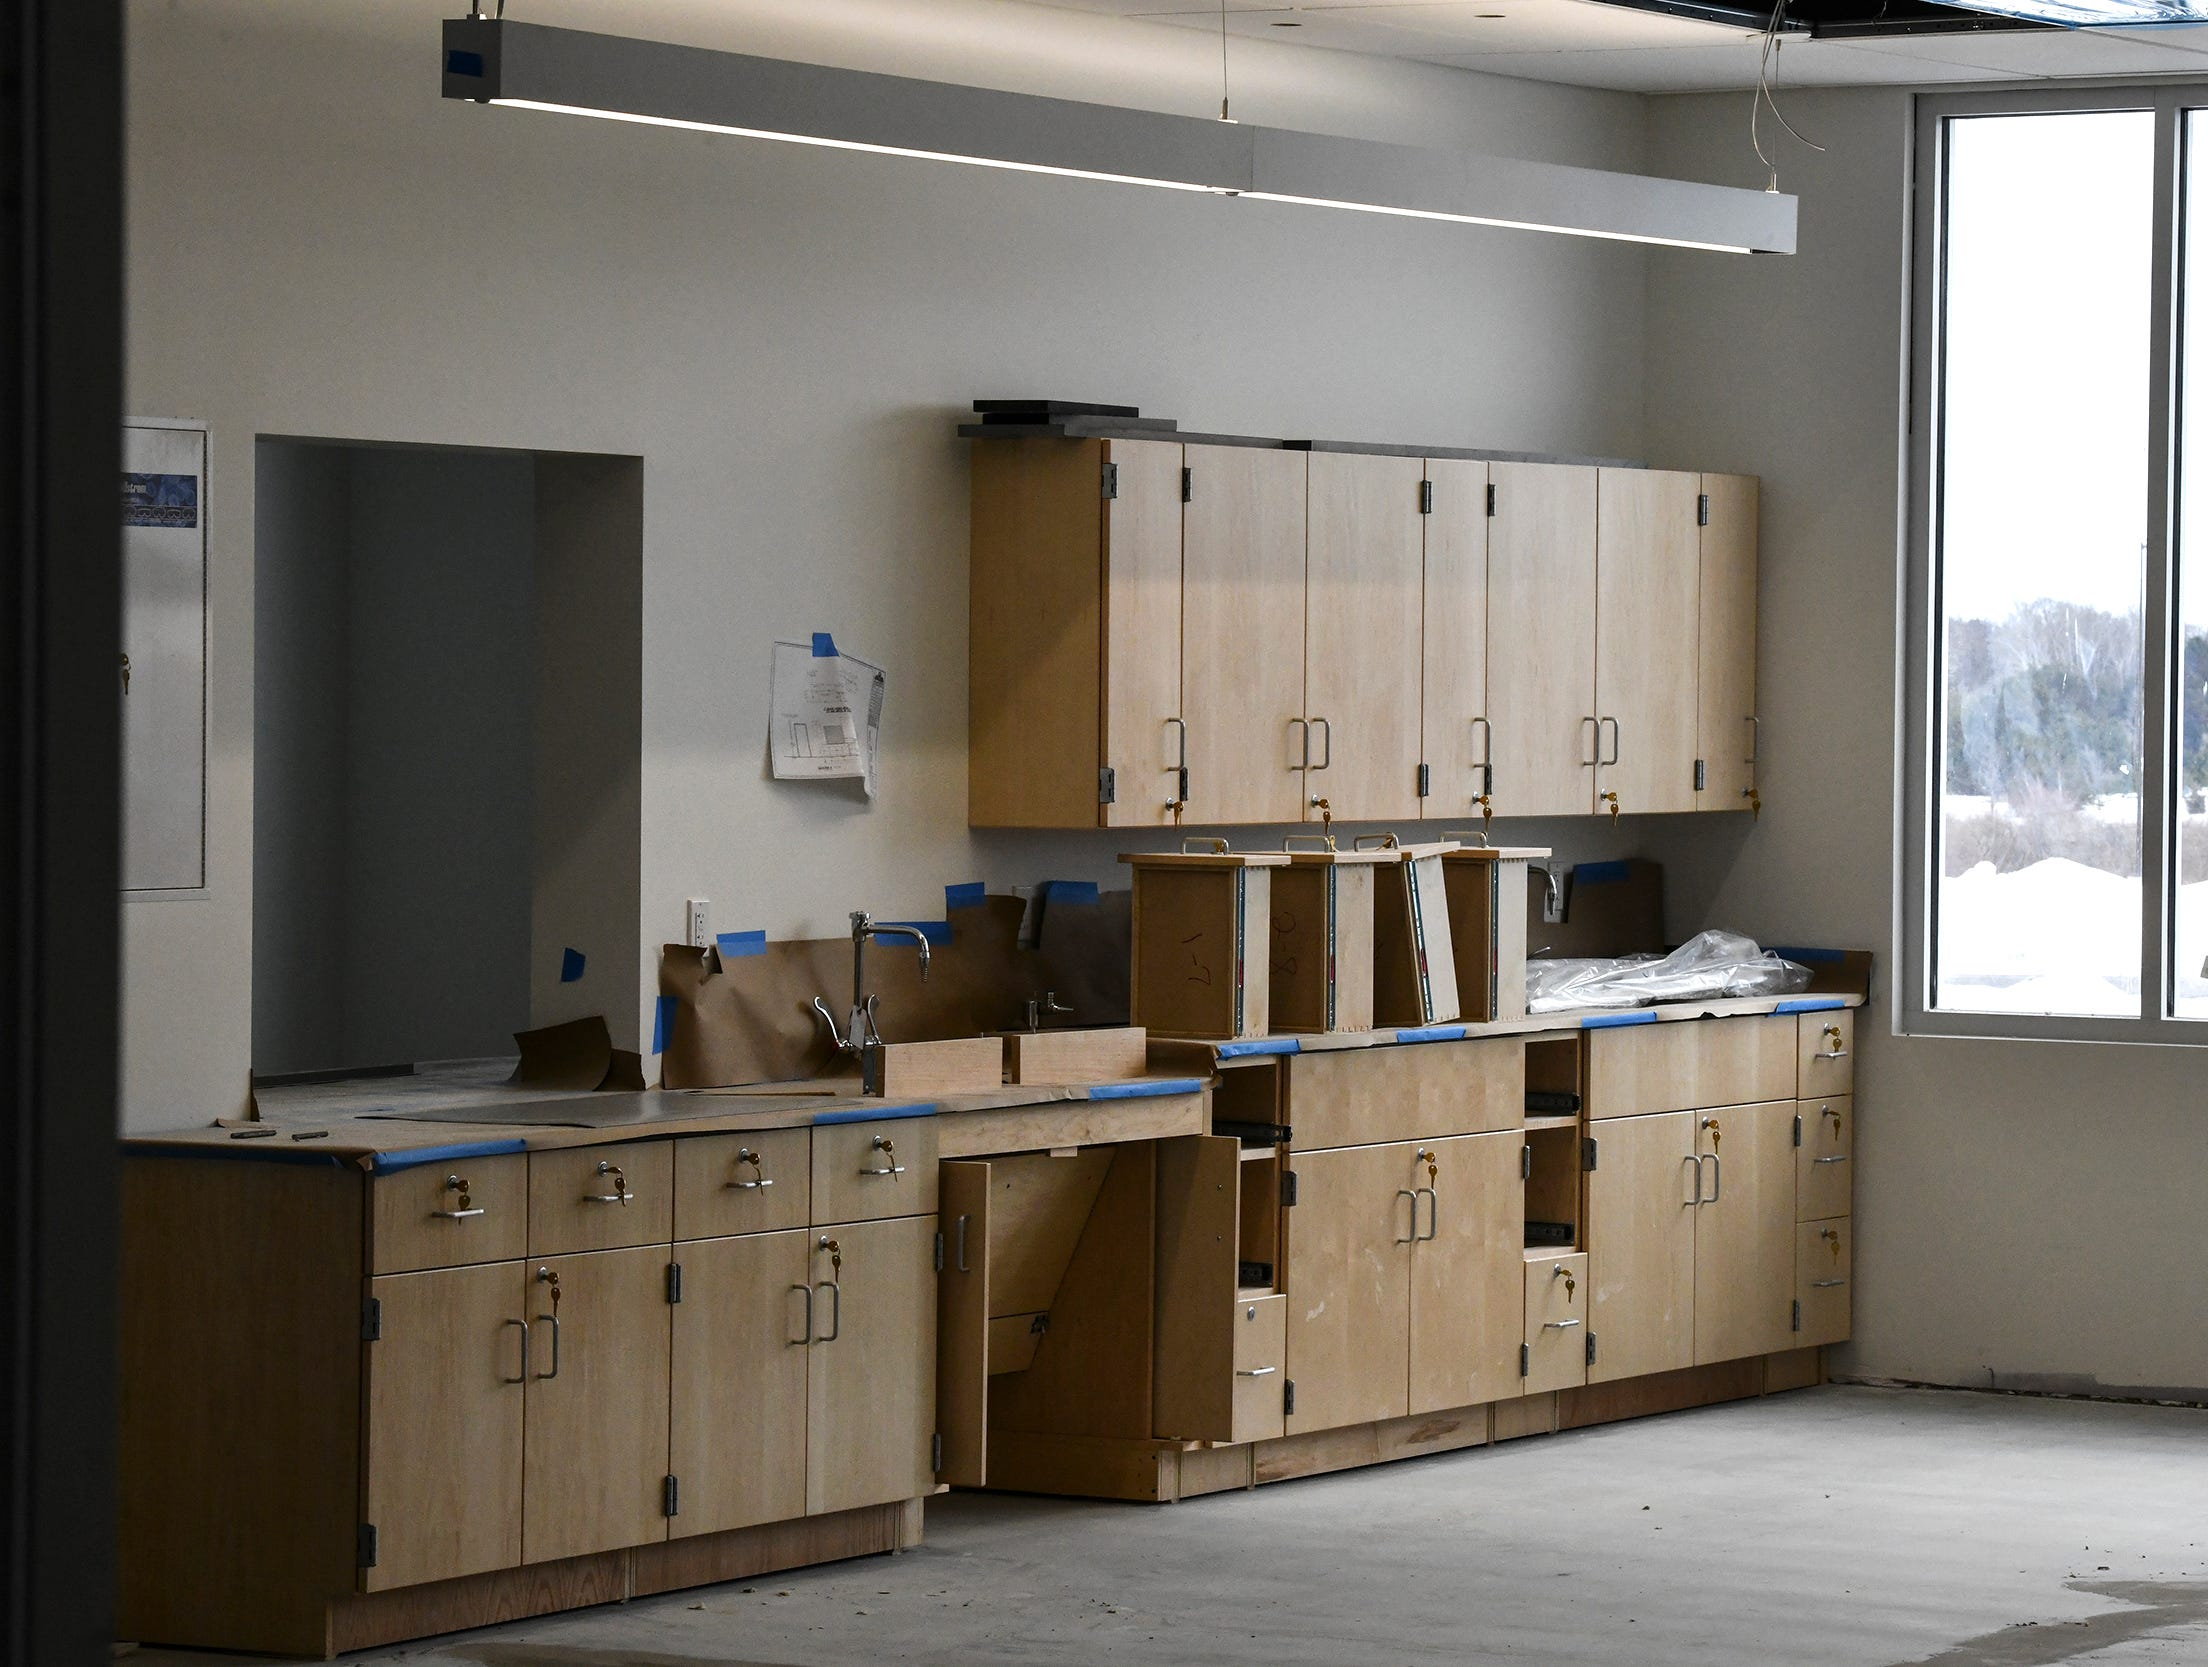 Cabinets are installed in a science classroom at the new Tech High School building Friday, March 15, in St. Cloud.